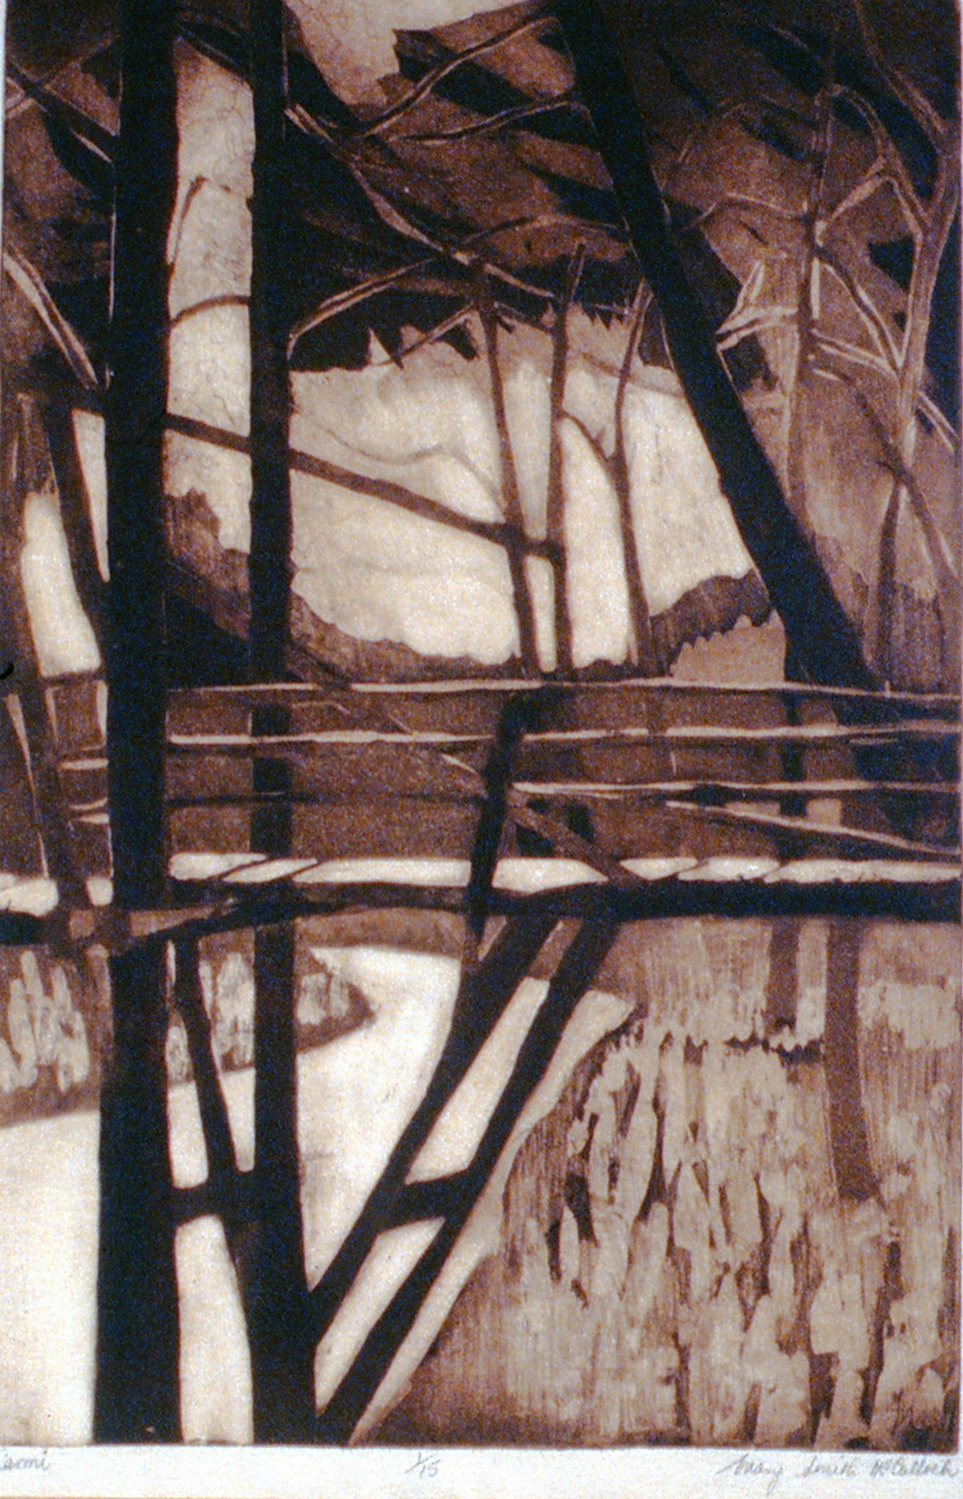 Carmi, n.d., Mary McCulloch, etching & aquatint, 48 x 31.5cm, 1995.01.07. Gift of the Okanagan Mainline Regional Arts Council.